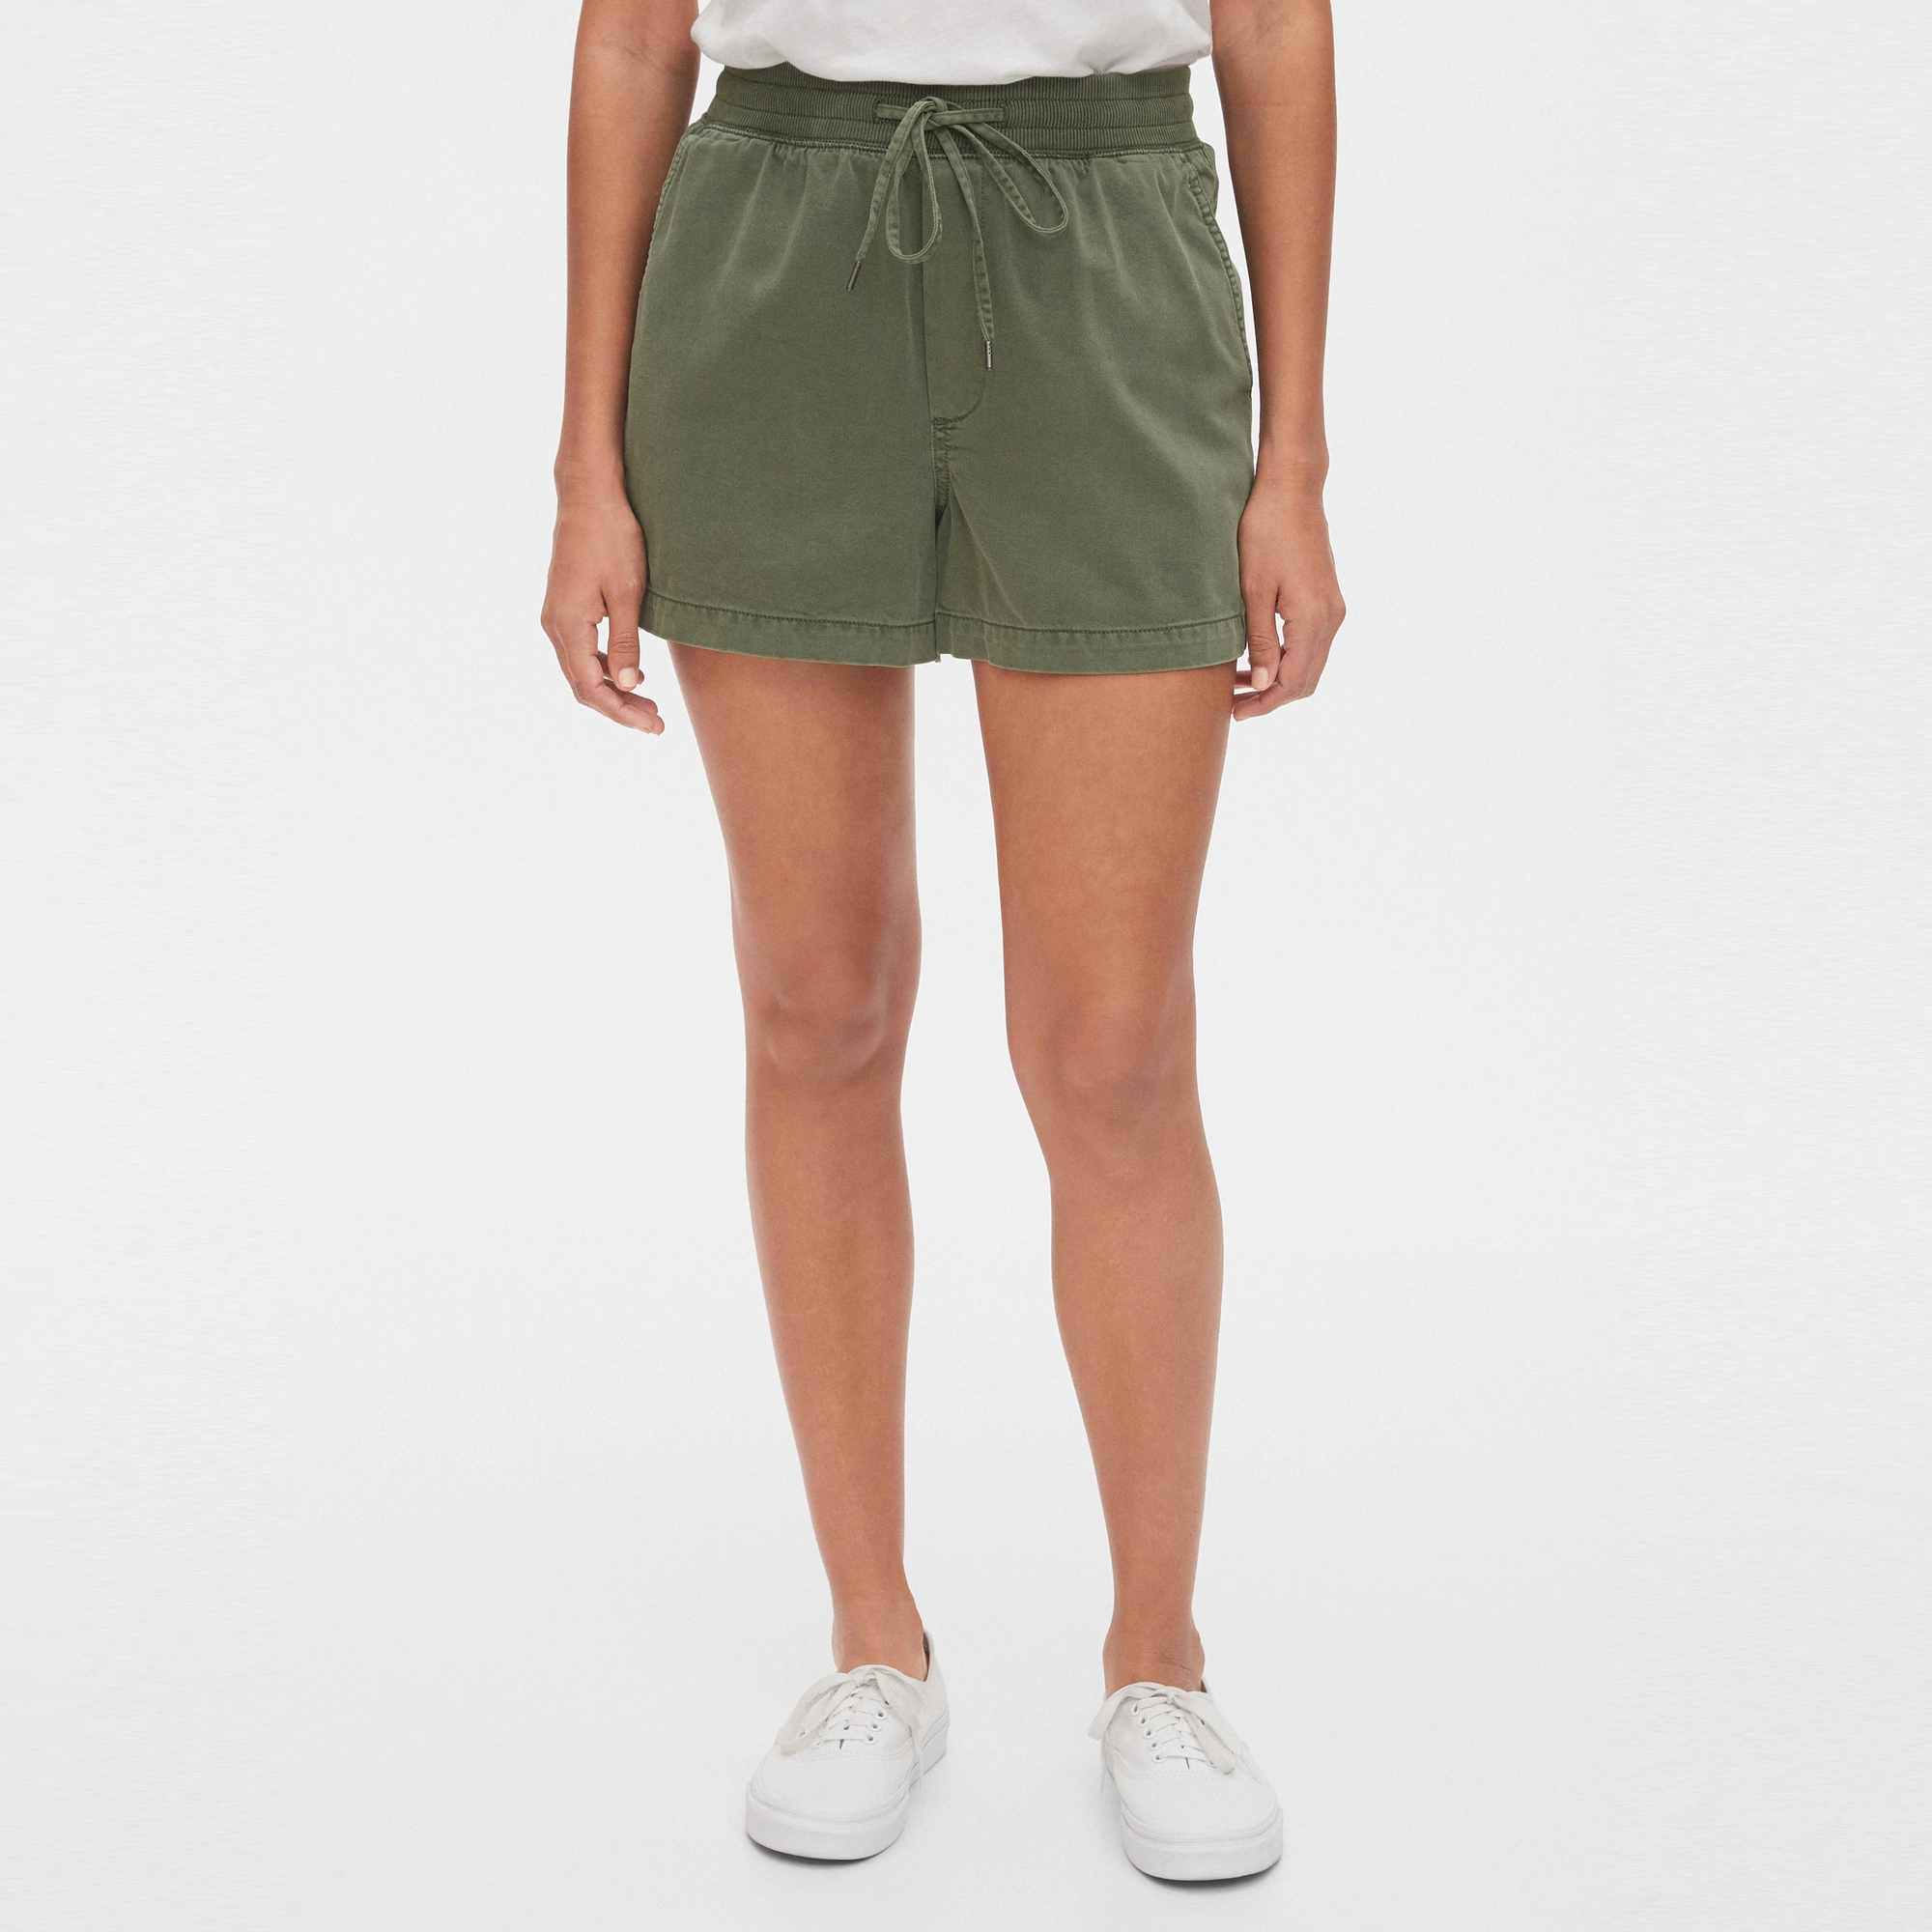 GAP Textil Shorts Pull On Shorts - Douglas Fir 543310-043